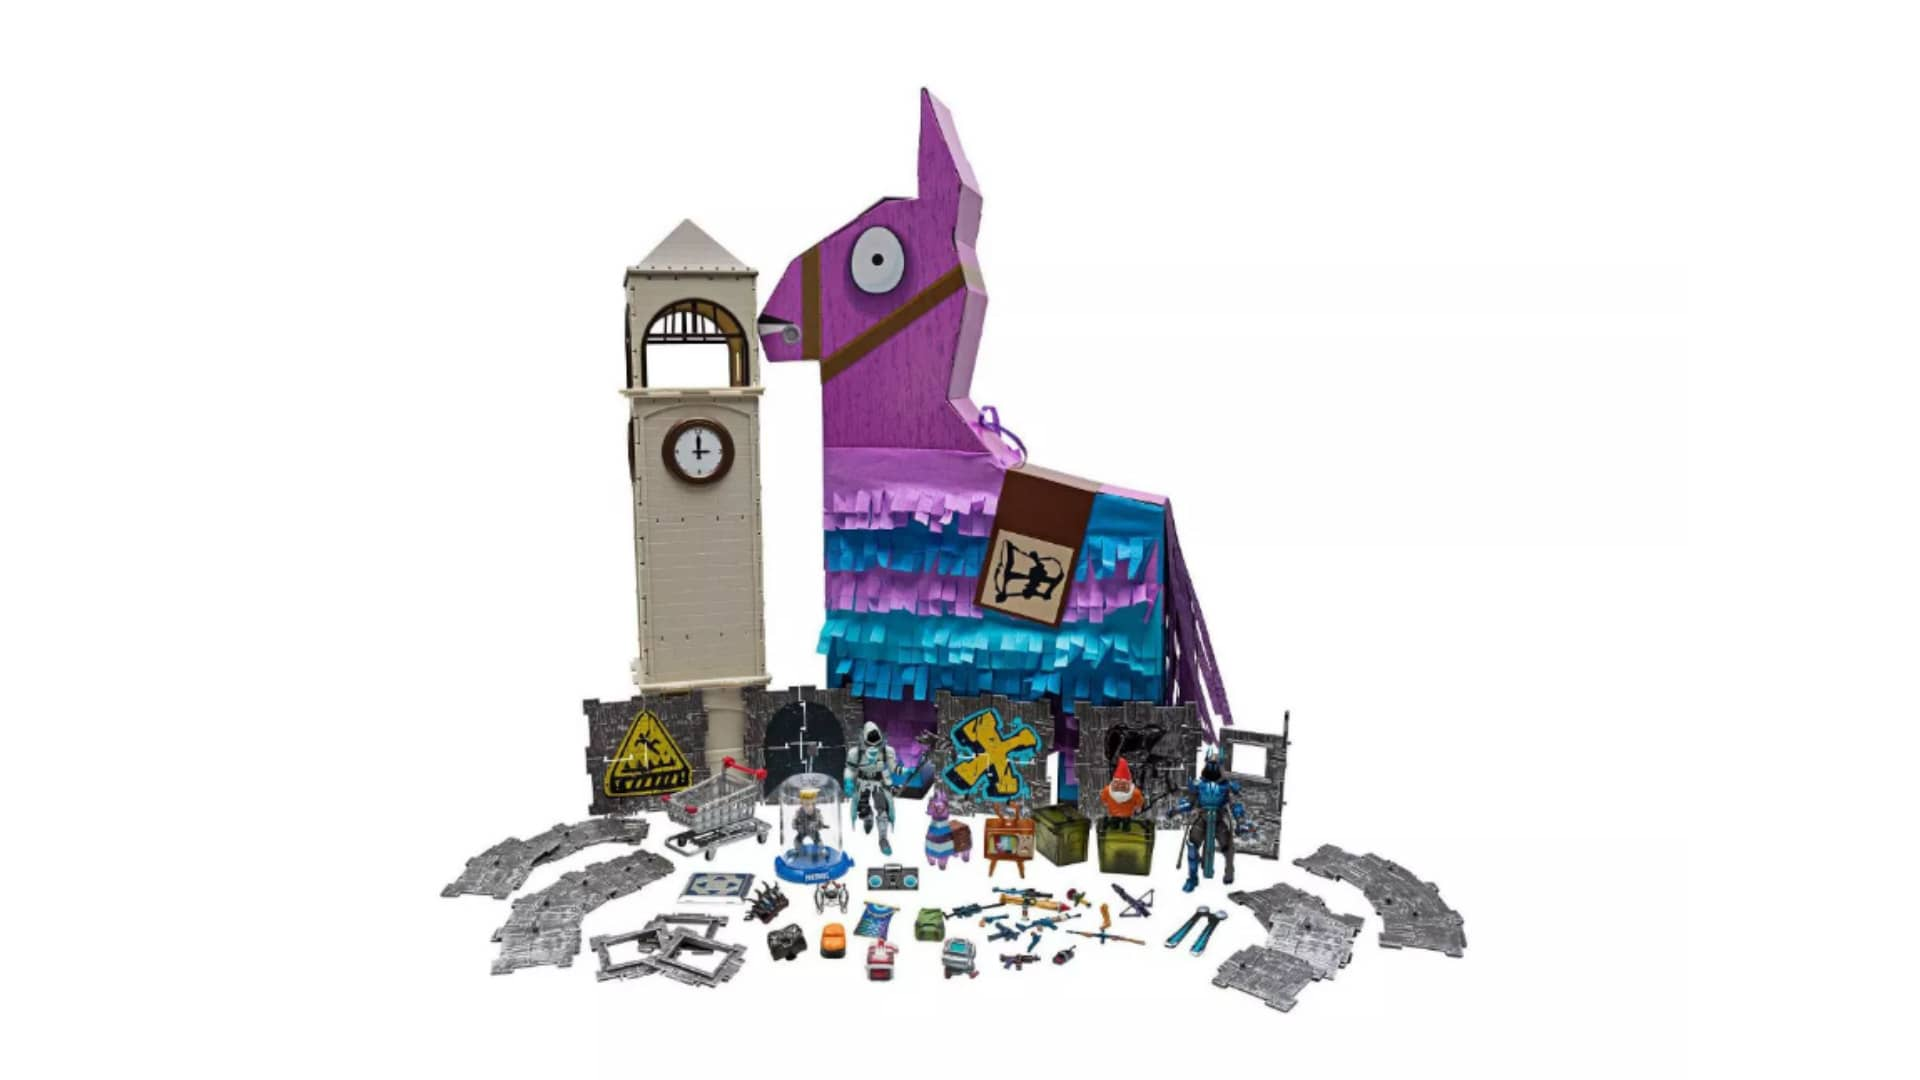 Unbox theJumbo Llama by tearing it open and digging through confetti to reveal your loot.